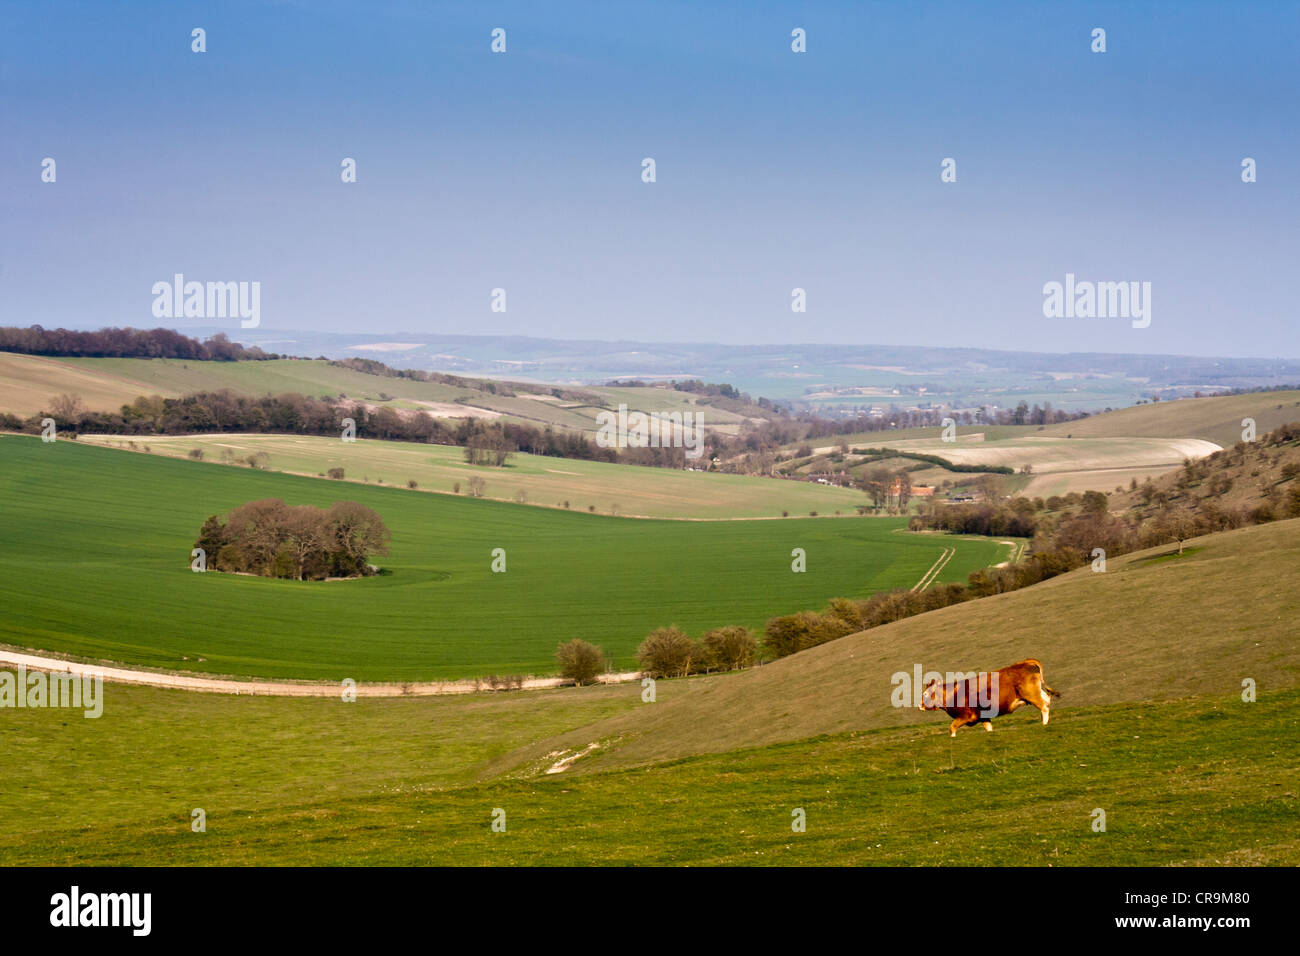 A landscape view of the Berkshire Downs from the Ridgeway National Trail at Aldworth, Berkshire, England, GB, UK. - Stock Image